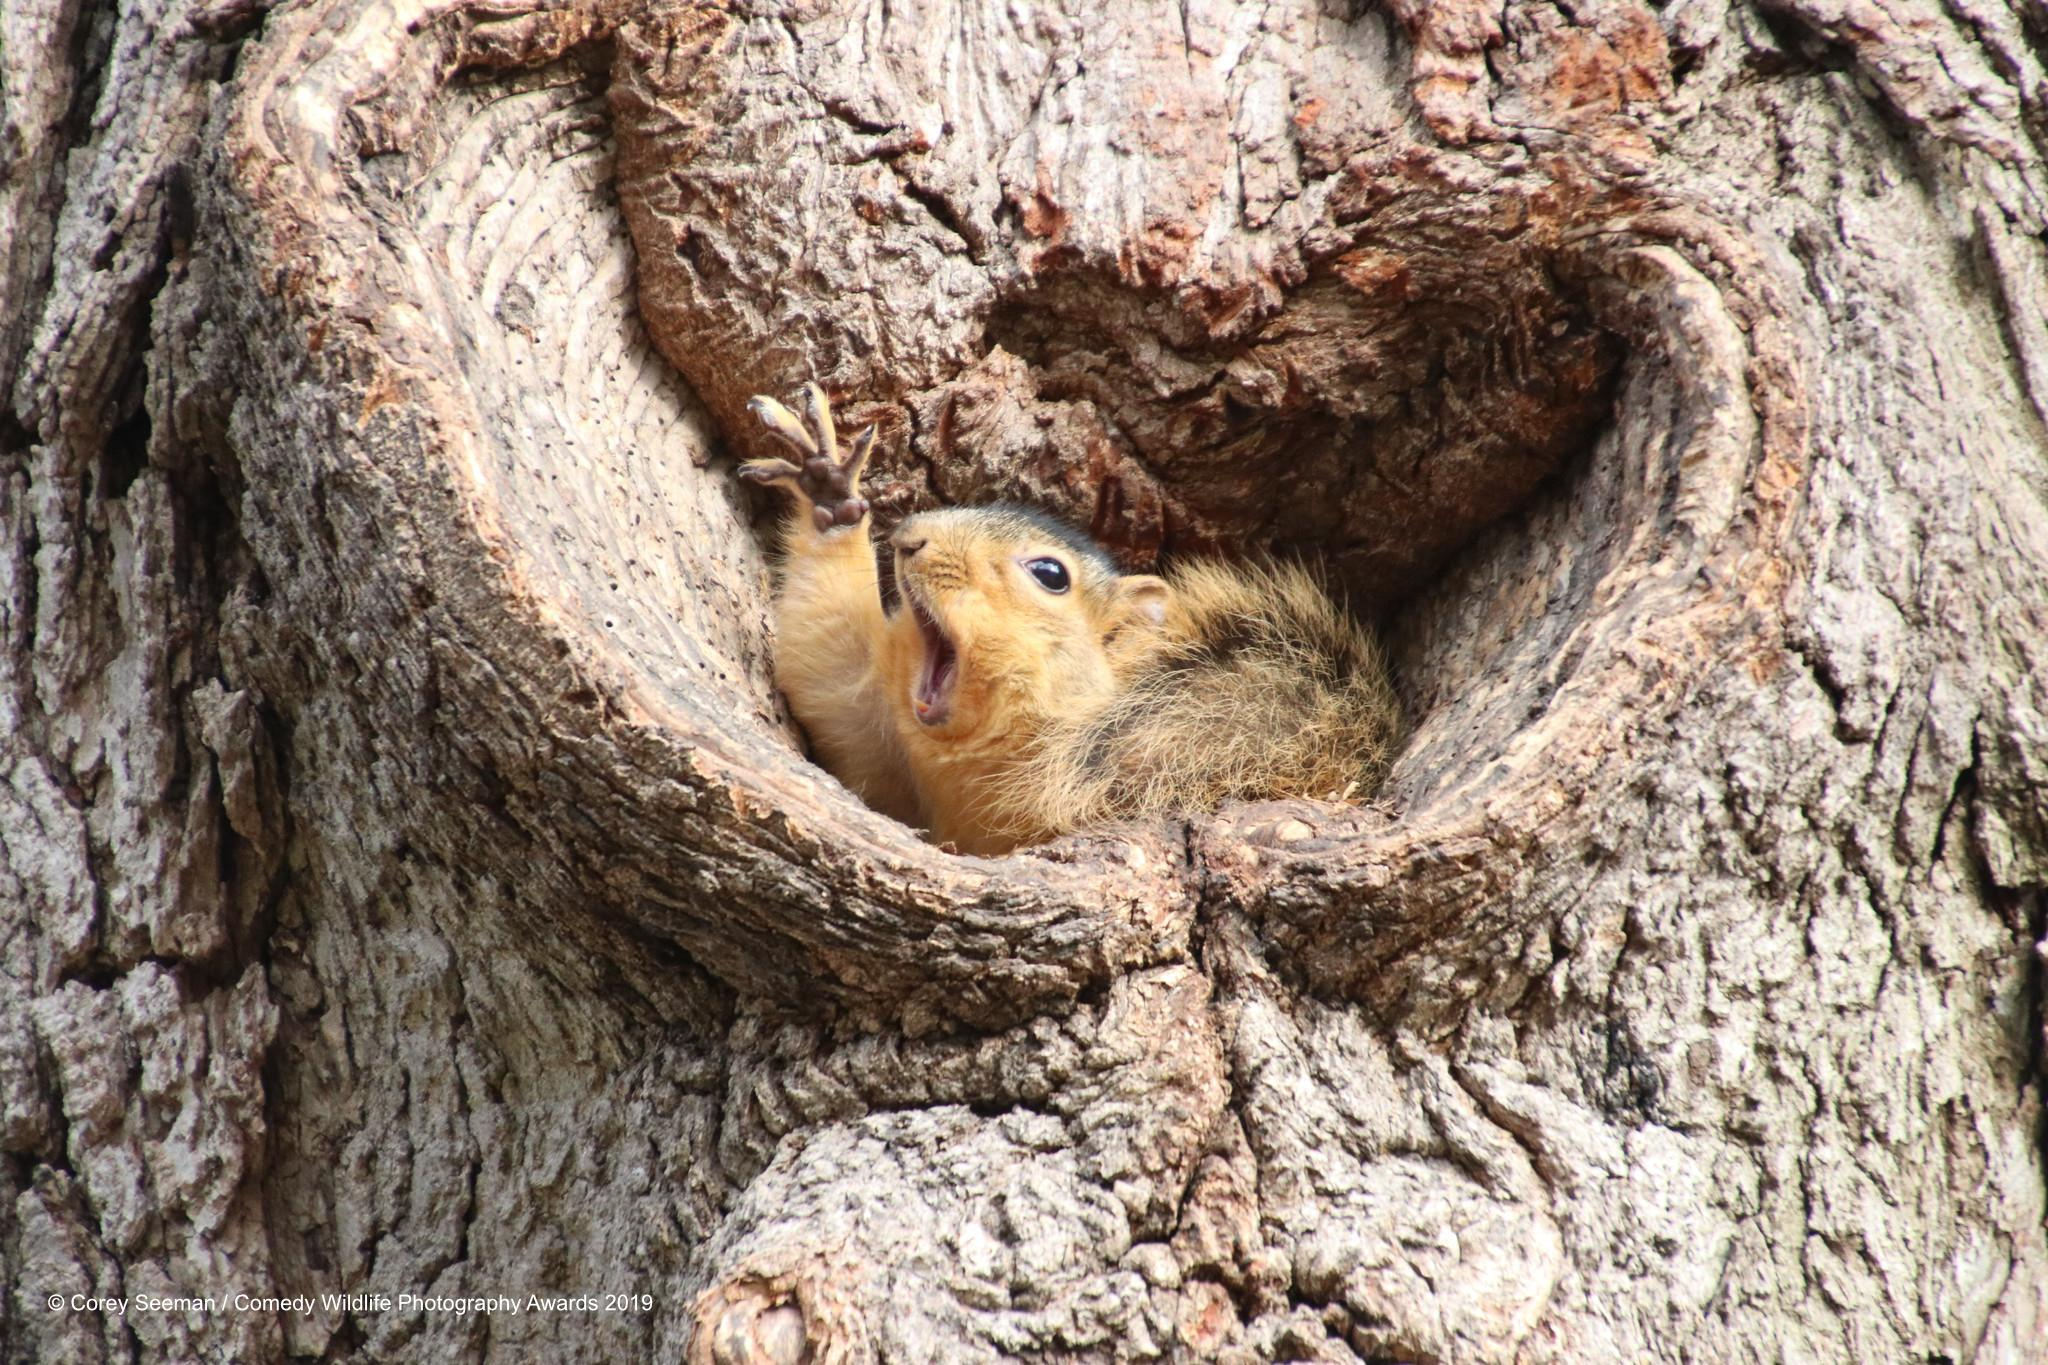 5-corey-seeman_who-would-like-a-peanut-squirrels-at-the-university-of-michigan_00003651-1568311185439-1574771723099.jpg